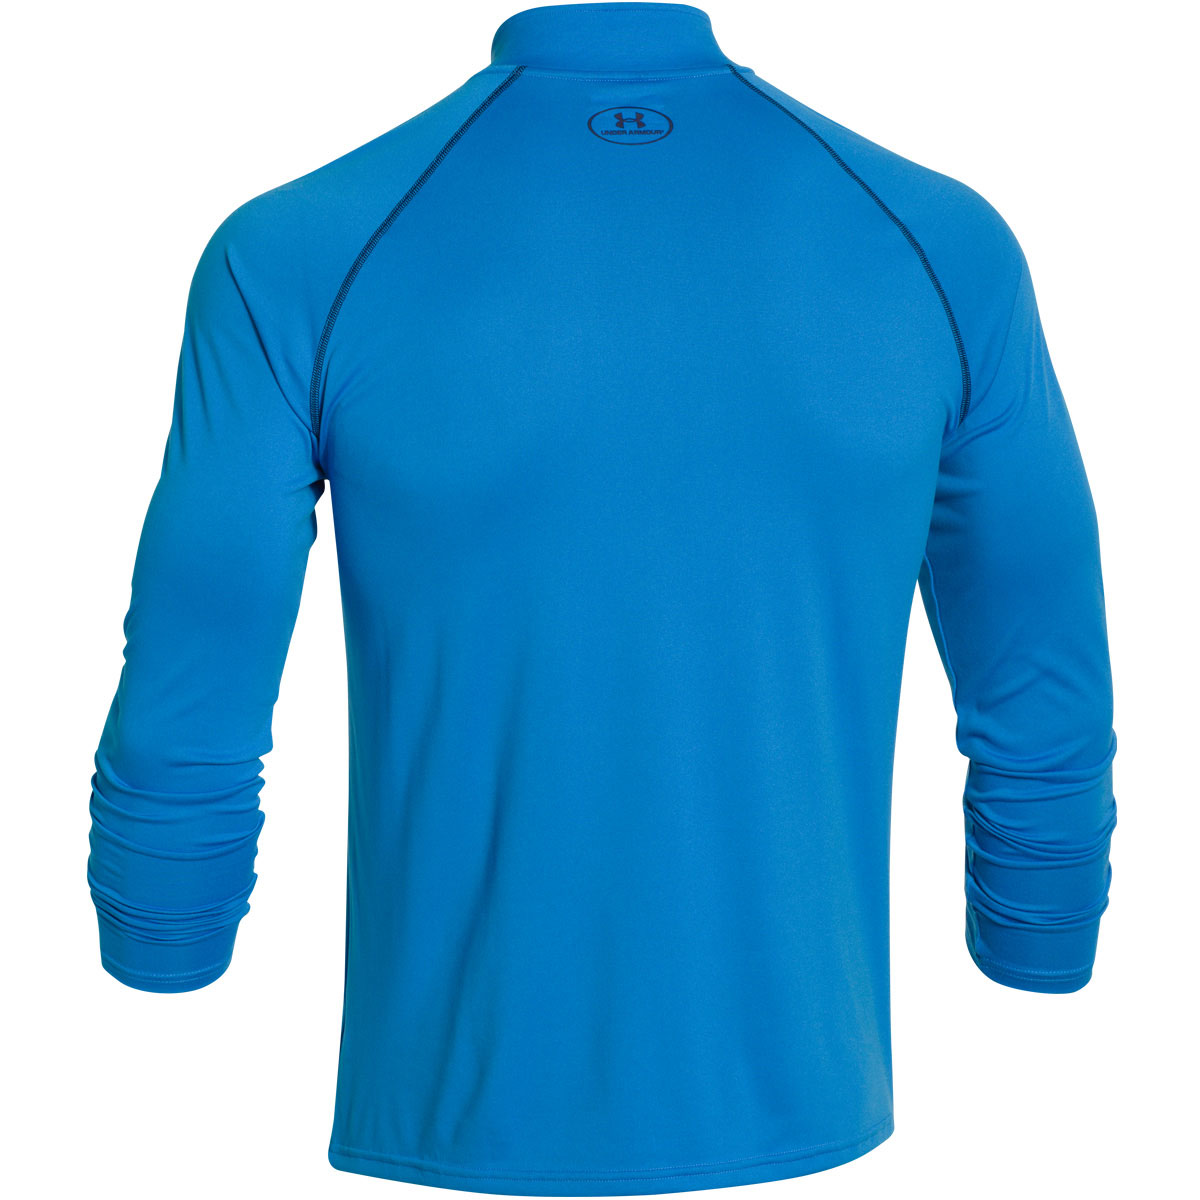 Under-Armour-Mens-UA-Tech-1-4-Zip-Long-Sleeve-Top-Workout-Layer-27-OFF-RRP thumbnail 37